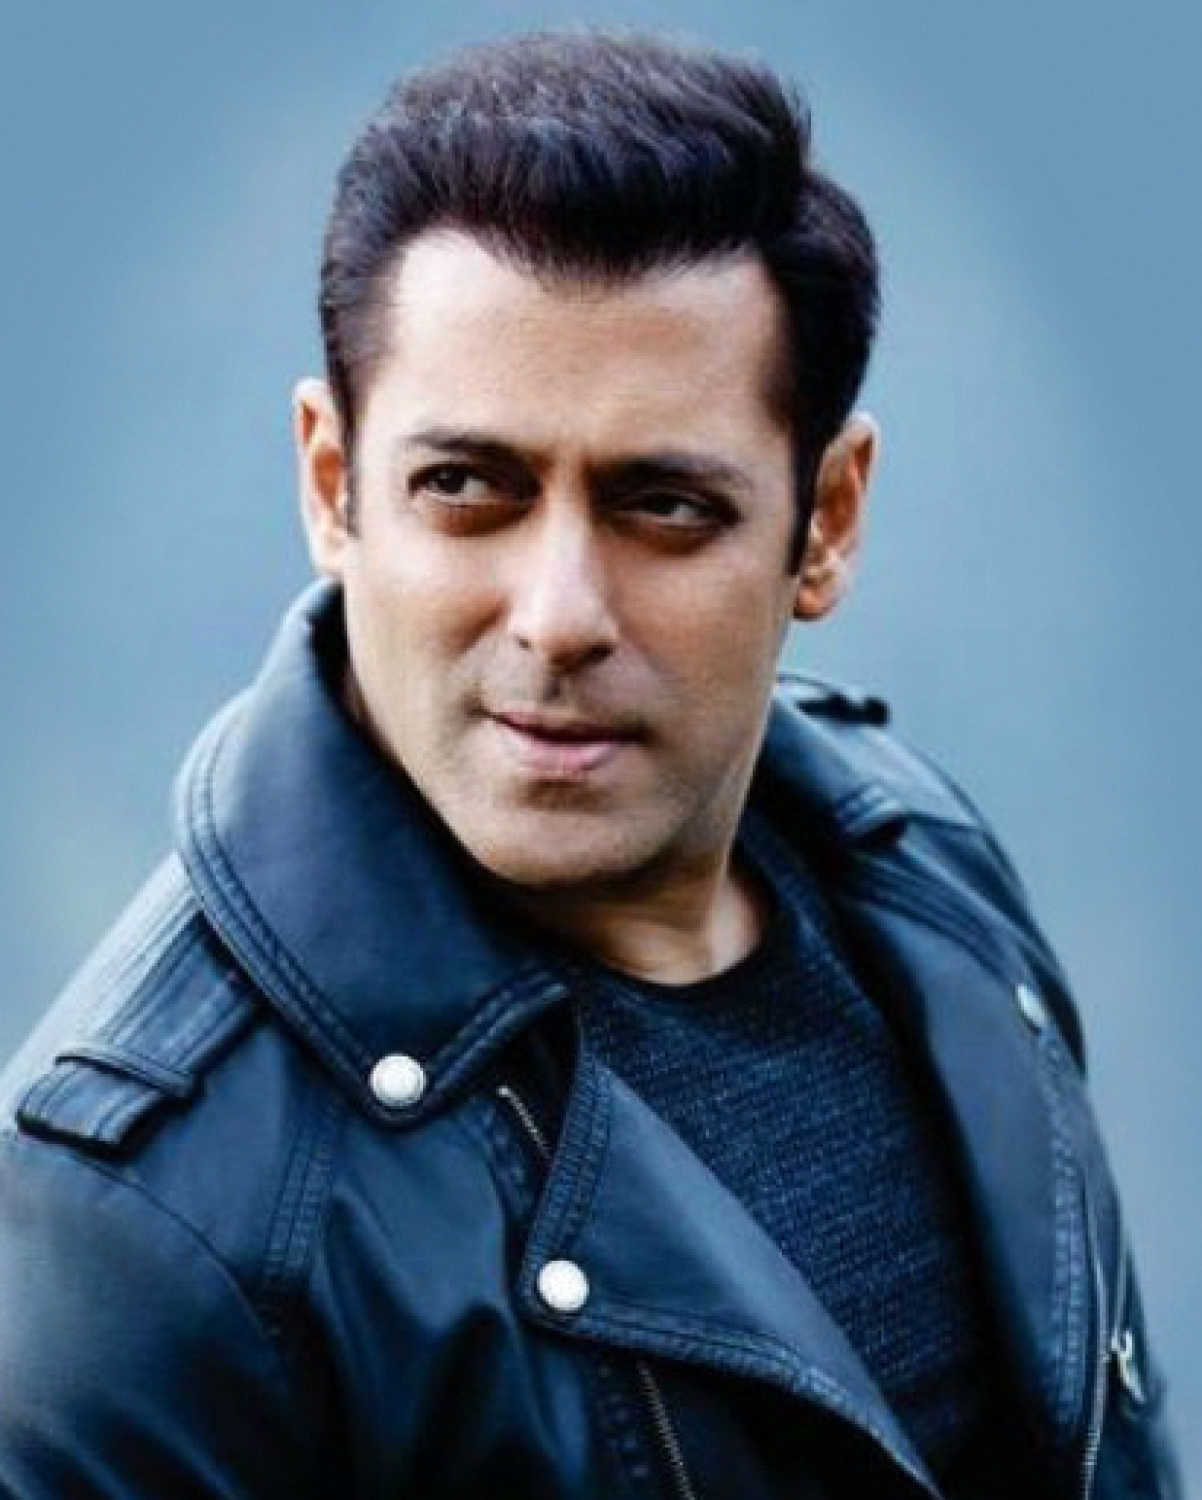 50 Best Evergreen Hairstyles For Men Recommended By Bollywood Stars In 2020 Salman Khan Salman Khan Photo Next Film